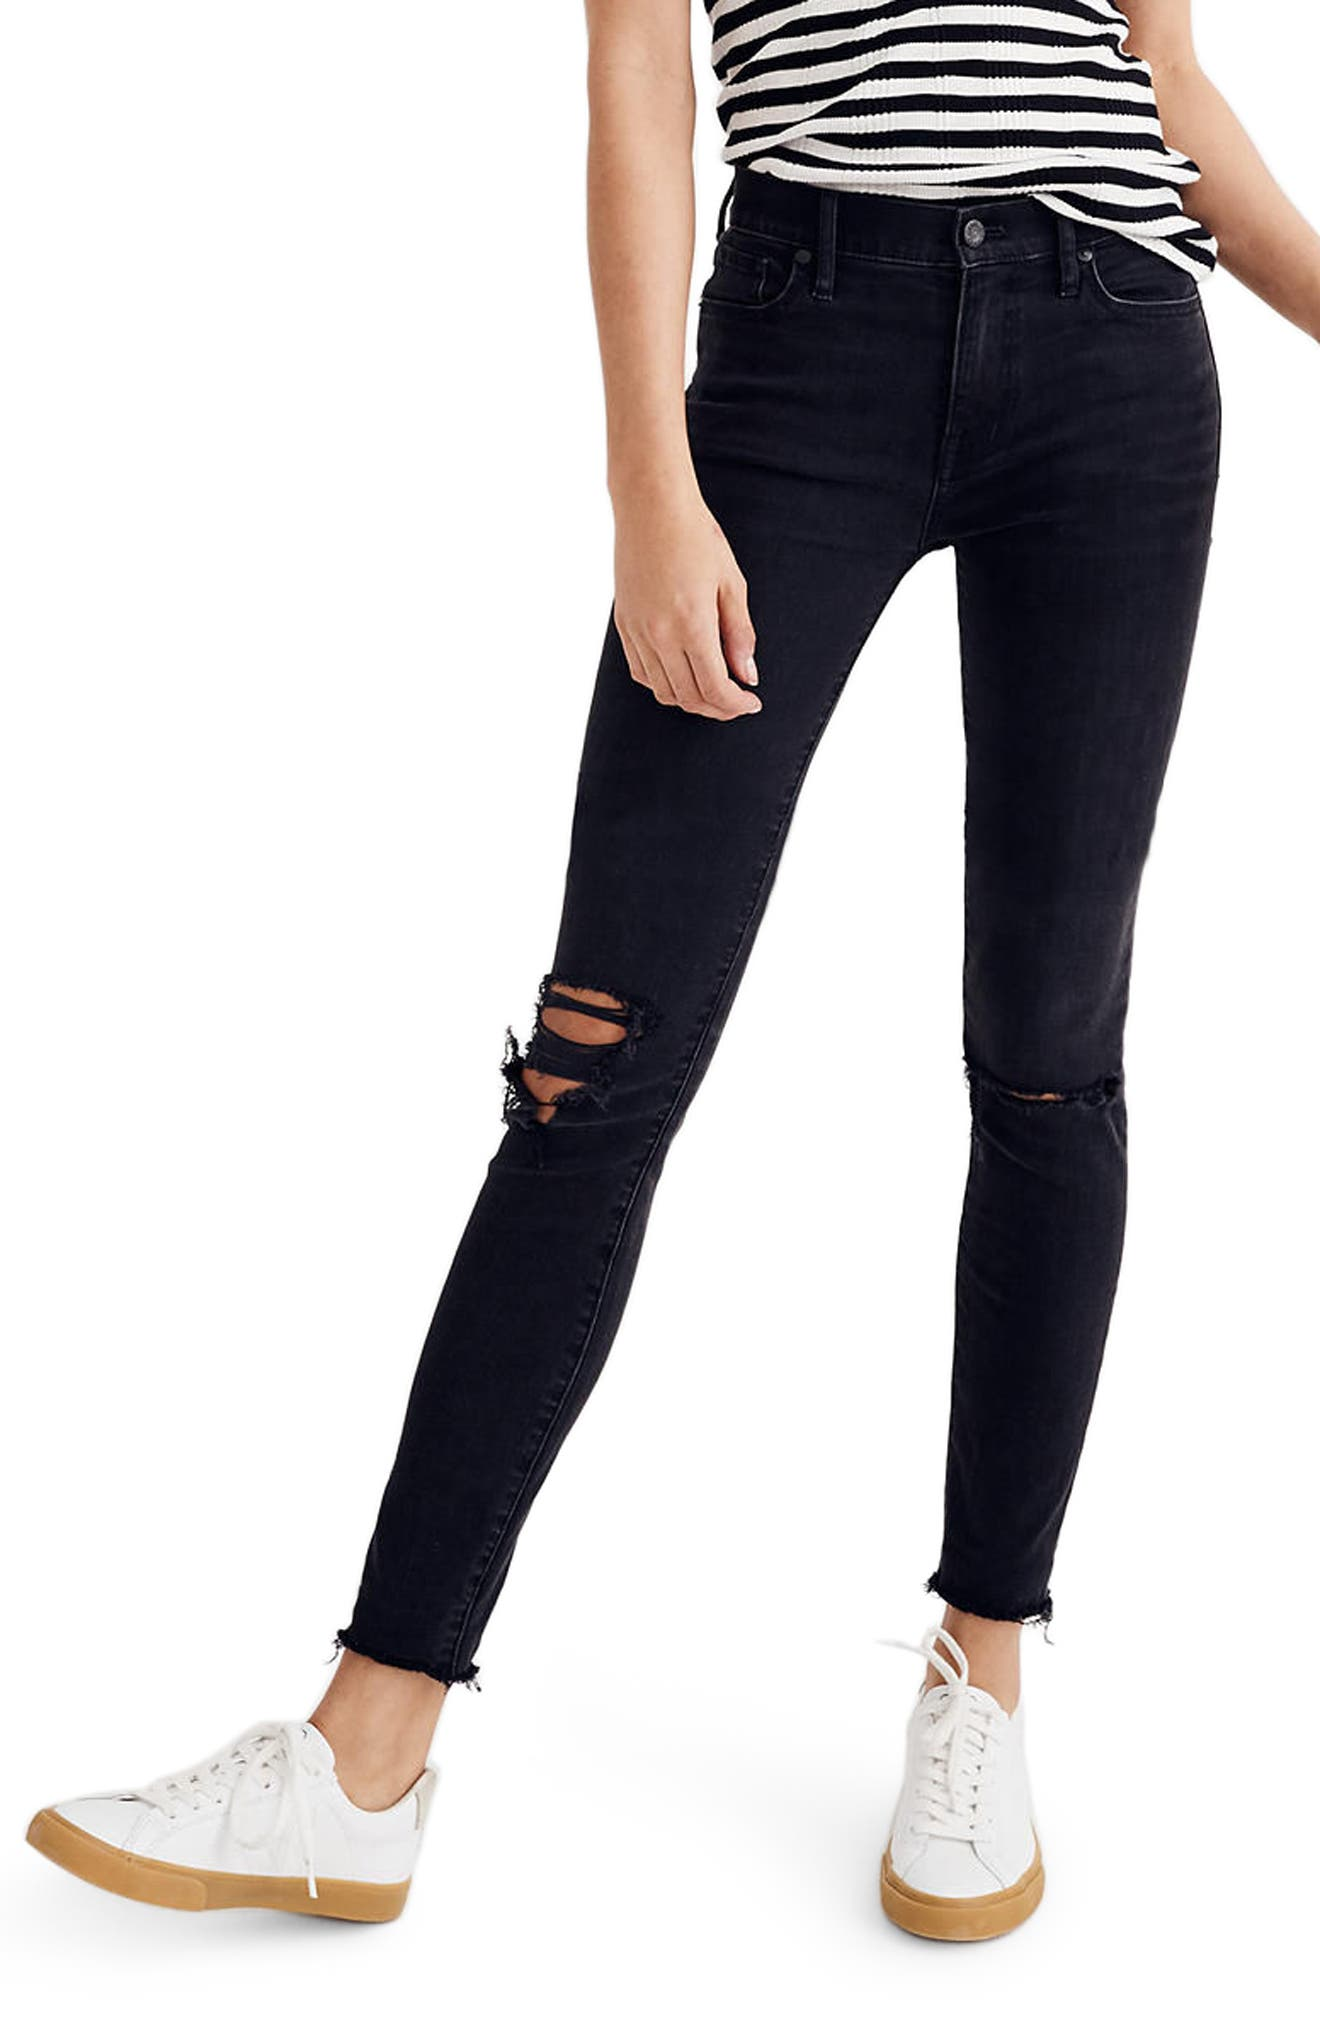 Main Image - Madewell 9-Inch High Waist Skinny Jeans (Black Sea)